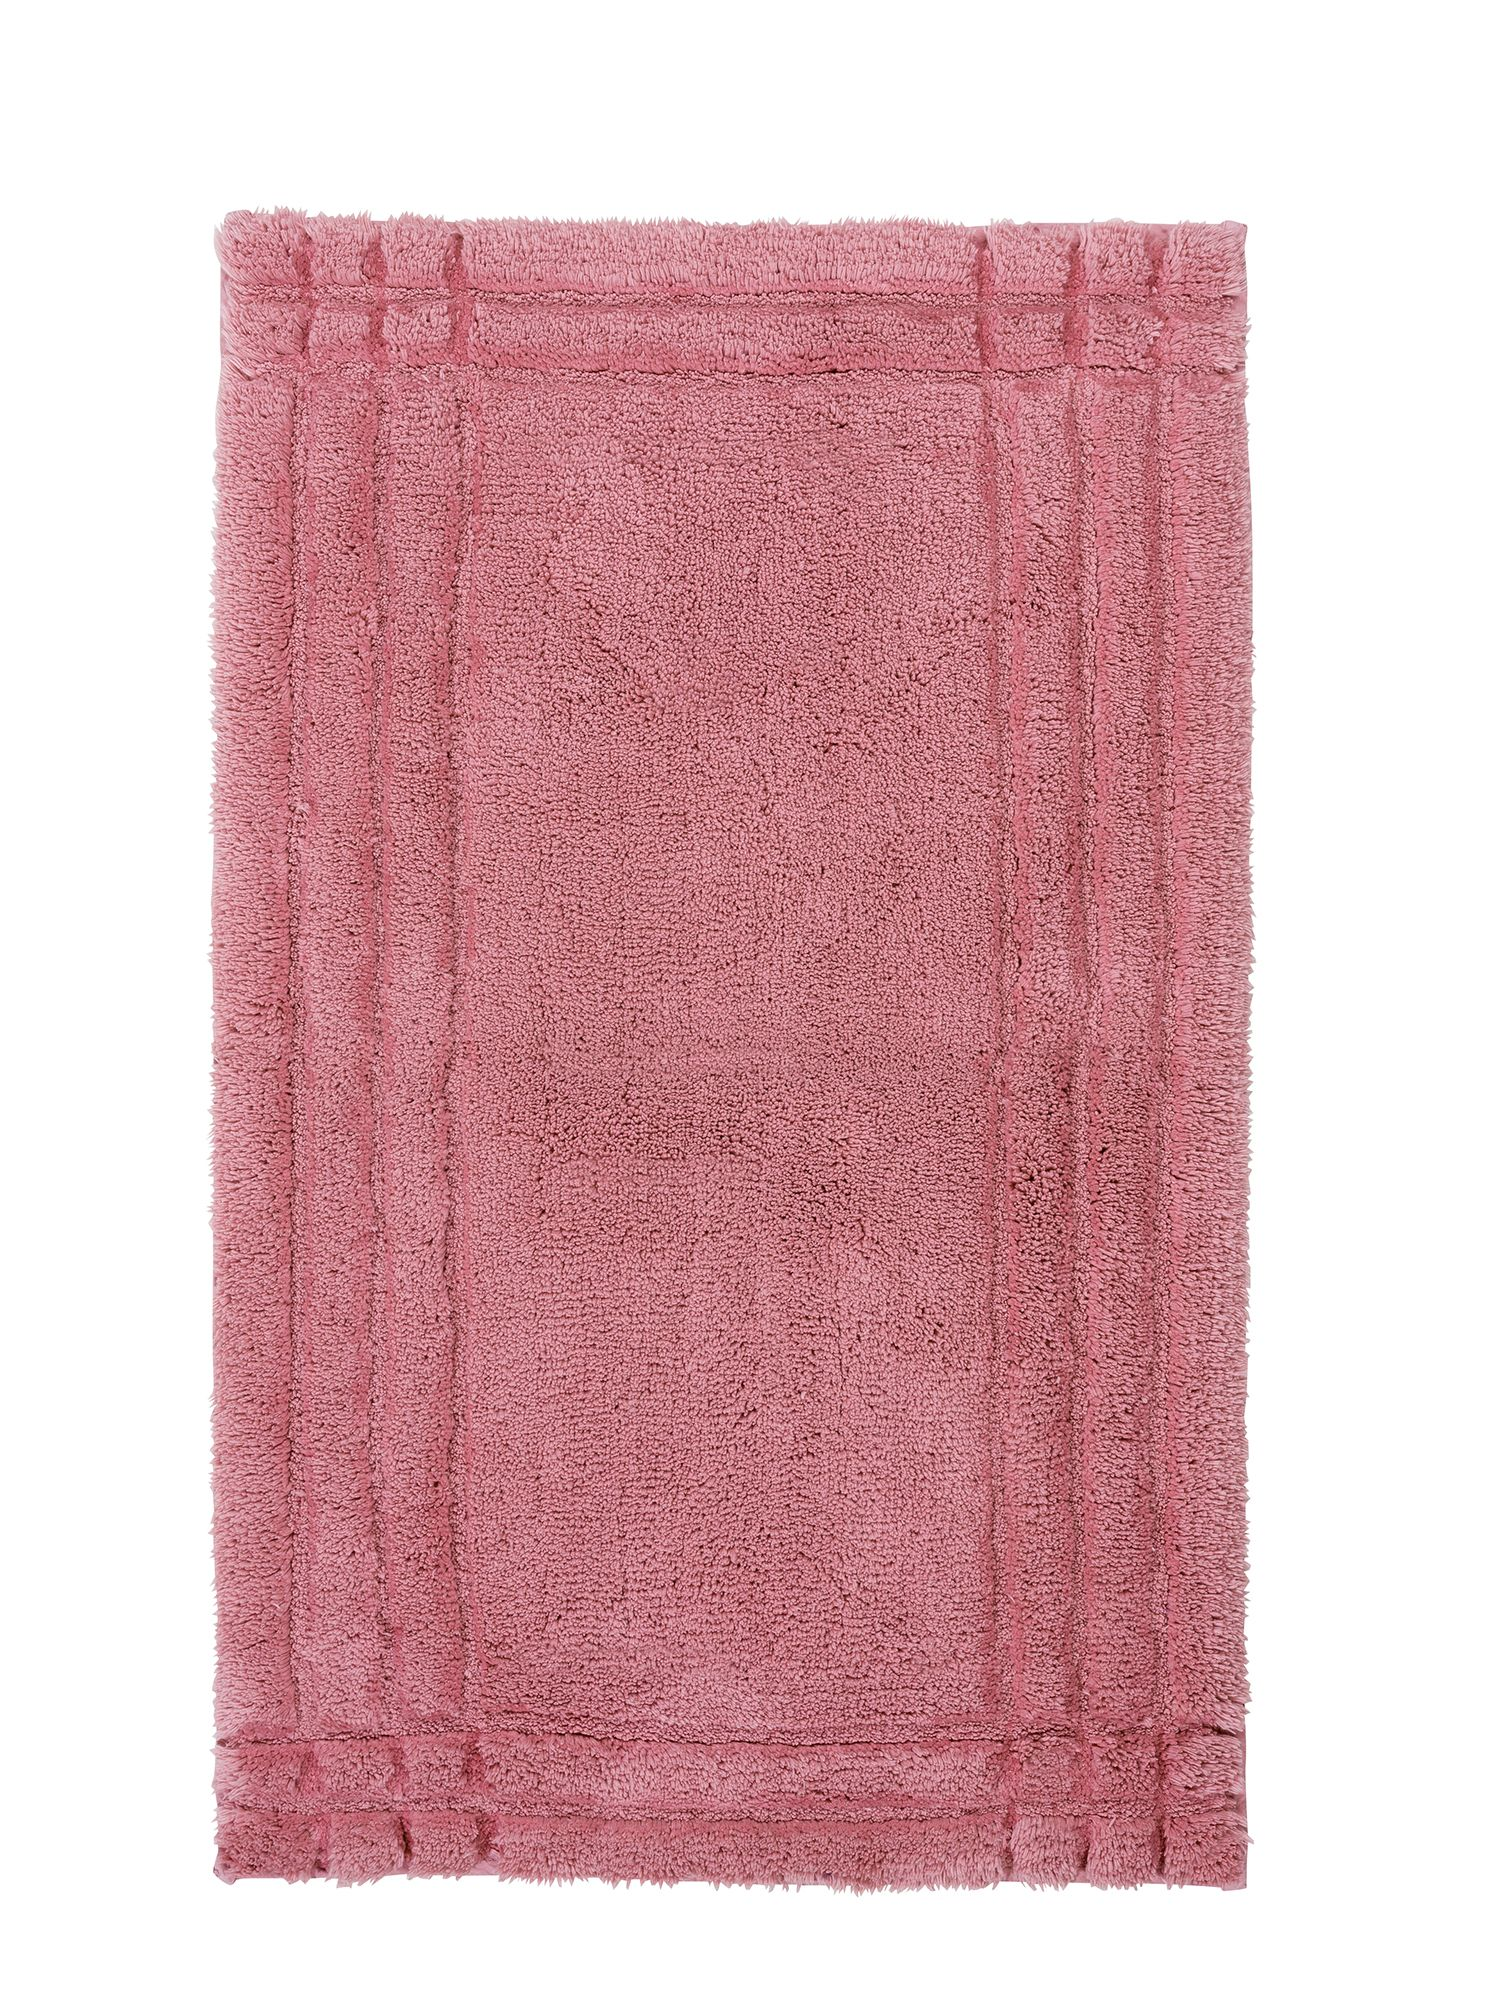 Supreme hygro bath mat blush